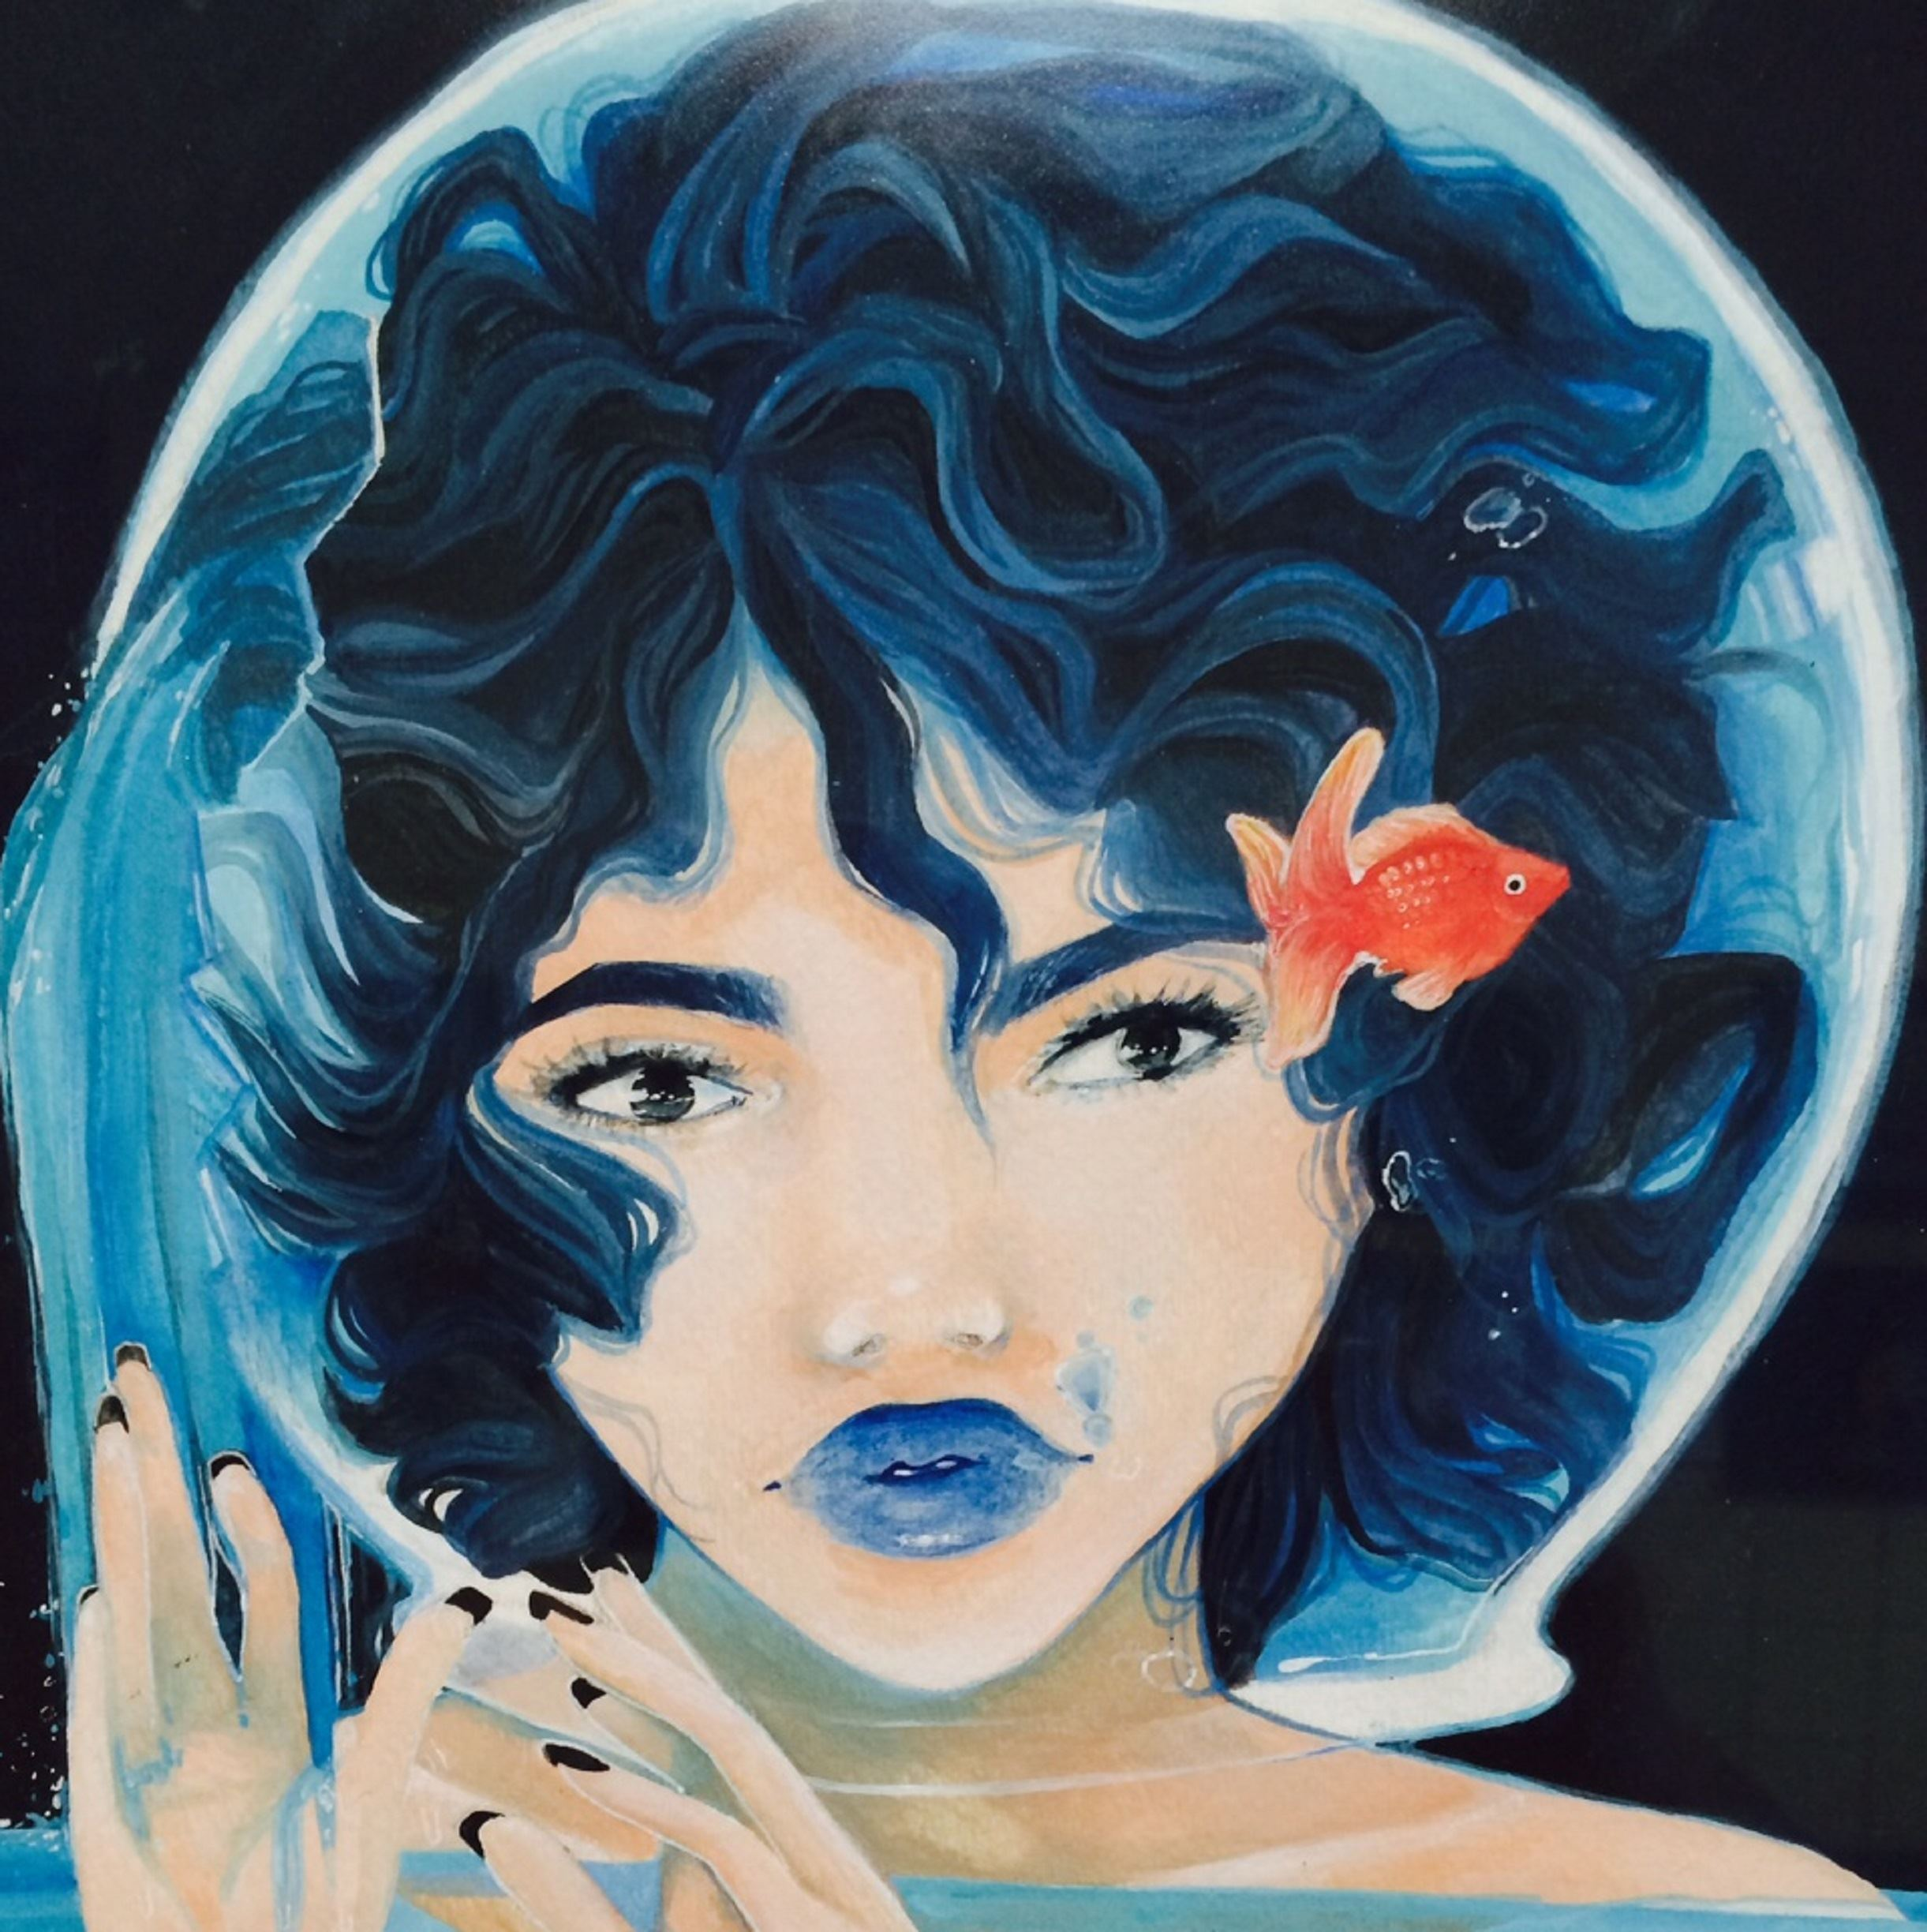 Painting of woman's head in fishbowl with goldfish